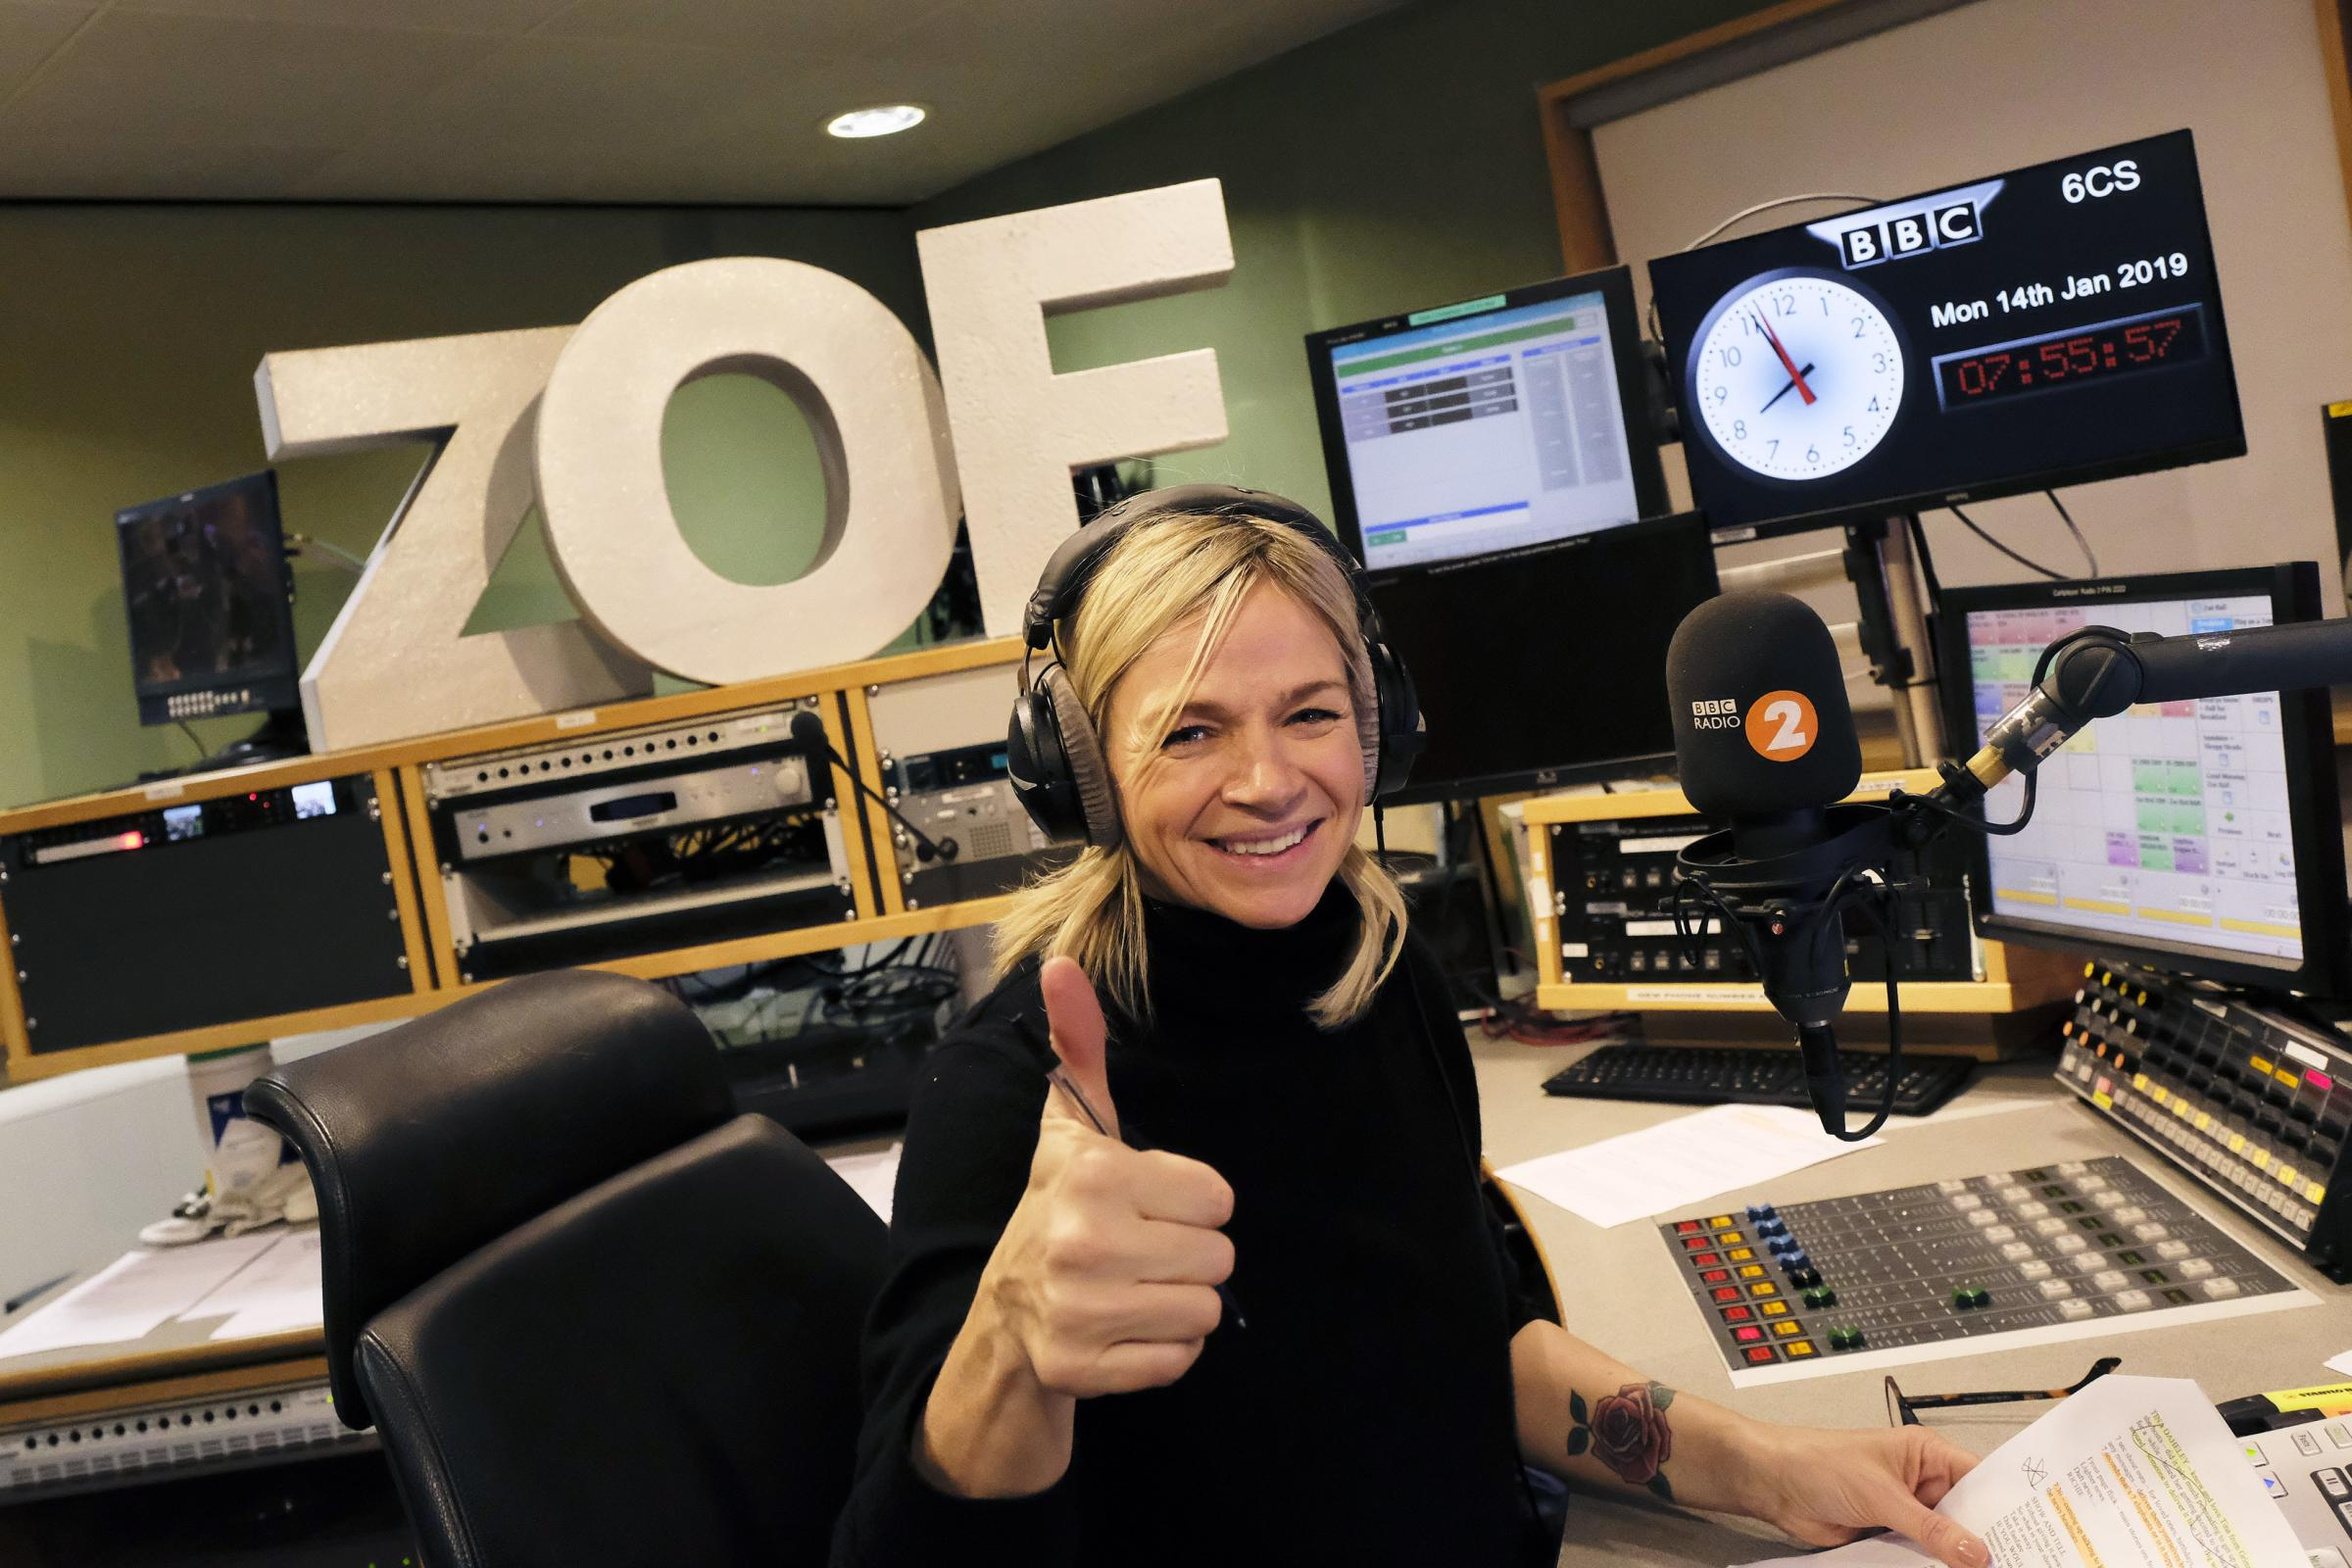 Zoe Ball on first day hosting BBC 2 Breakfast Show – London